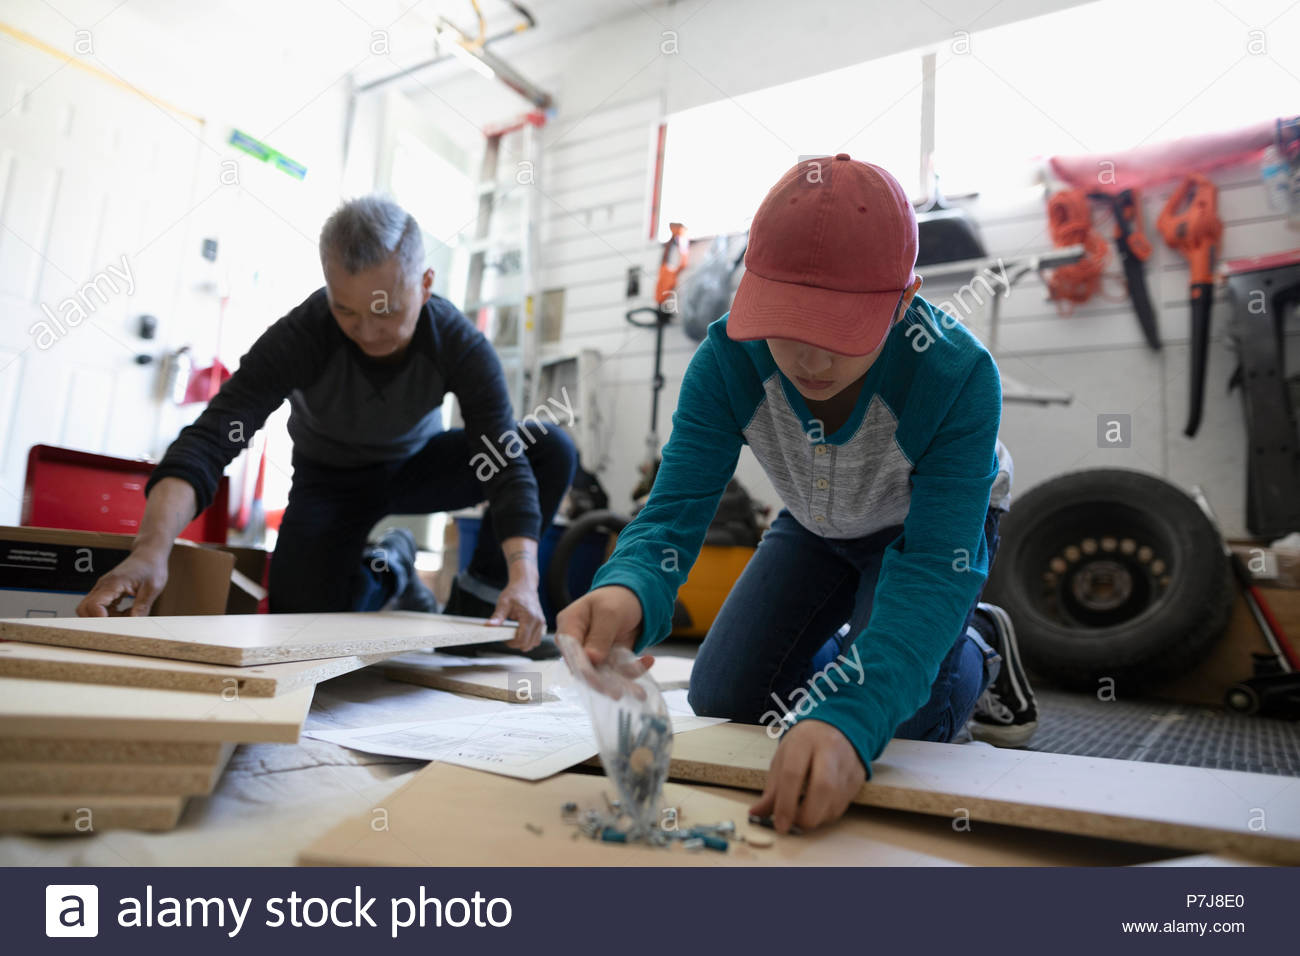 Father and son assembling flat pack furniture in garage - Stock Image